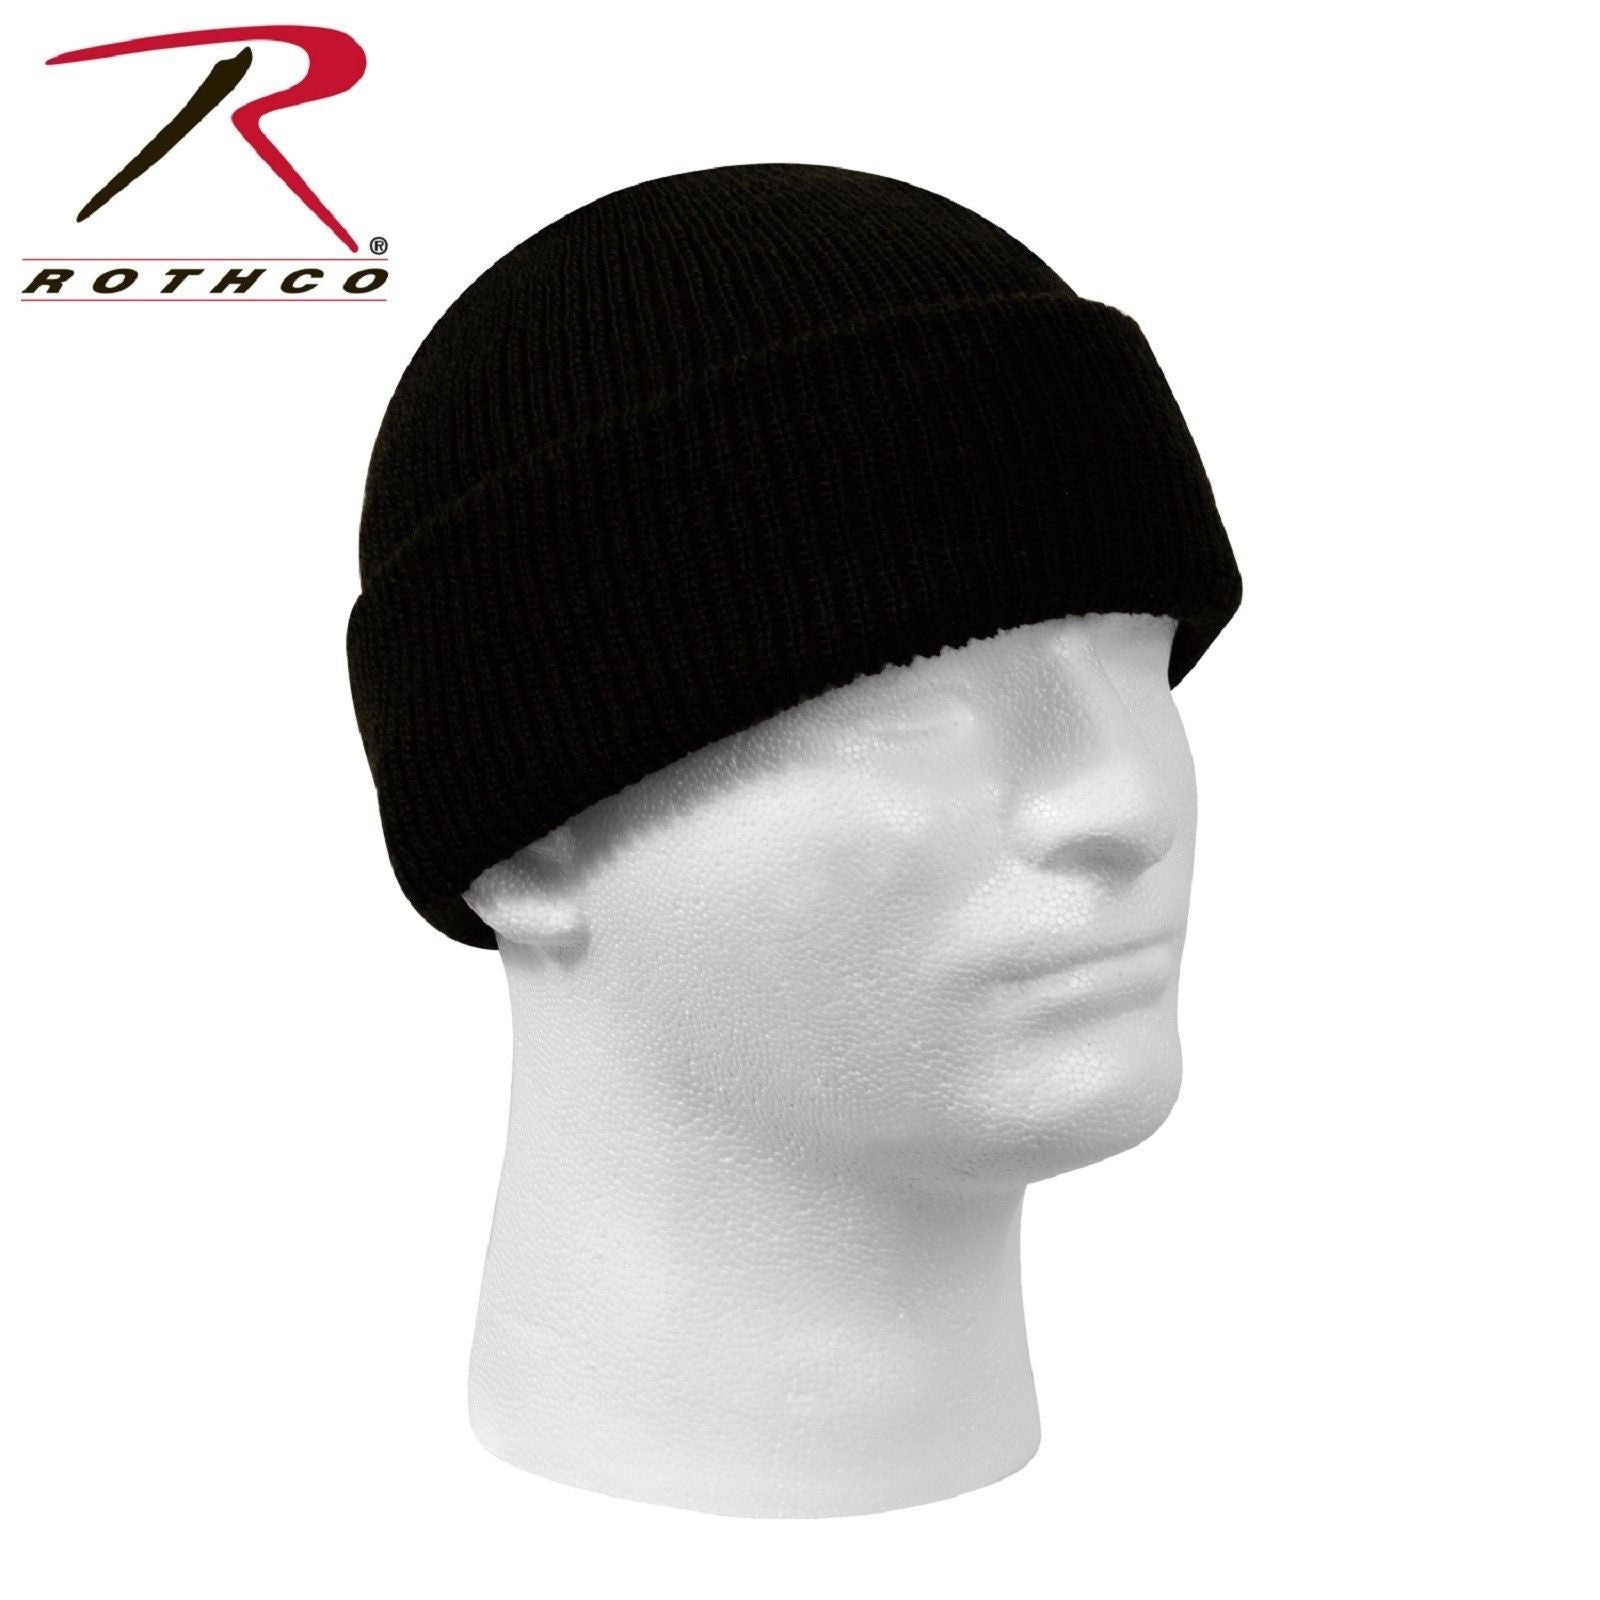 7197170d93f20 ... Black Winter Hat, Neck Warmer & Gloves 3 PACK Rothco Lot of 3 Cold  Weather ...